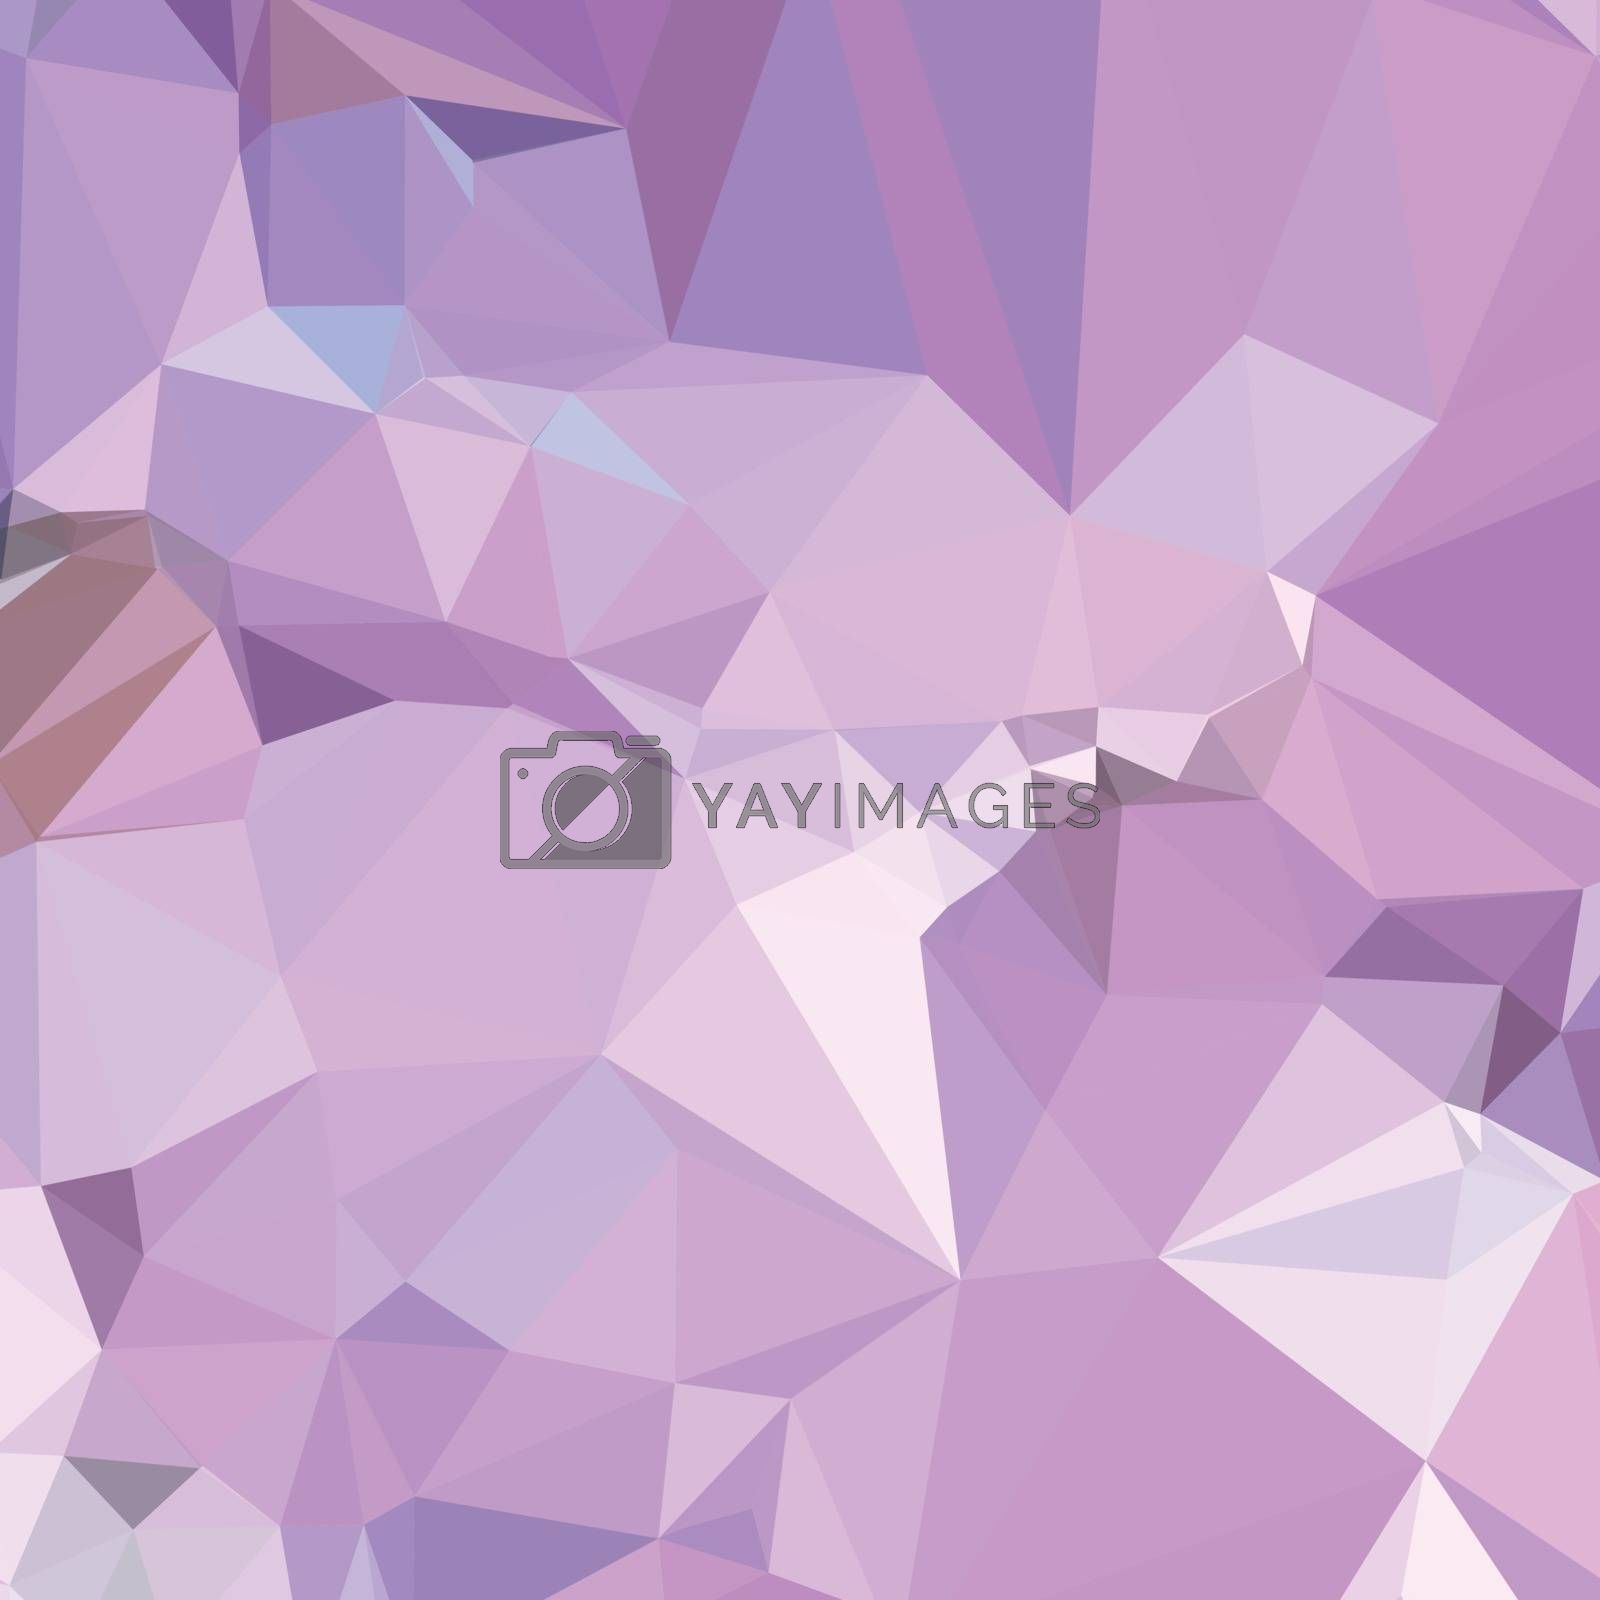 Low polygon style illustration of electric lavender abstract geometric background.